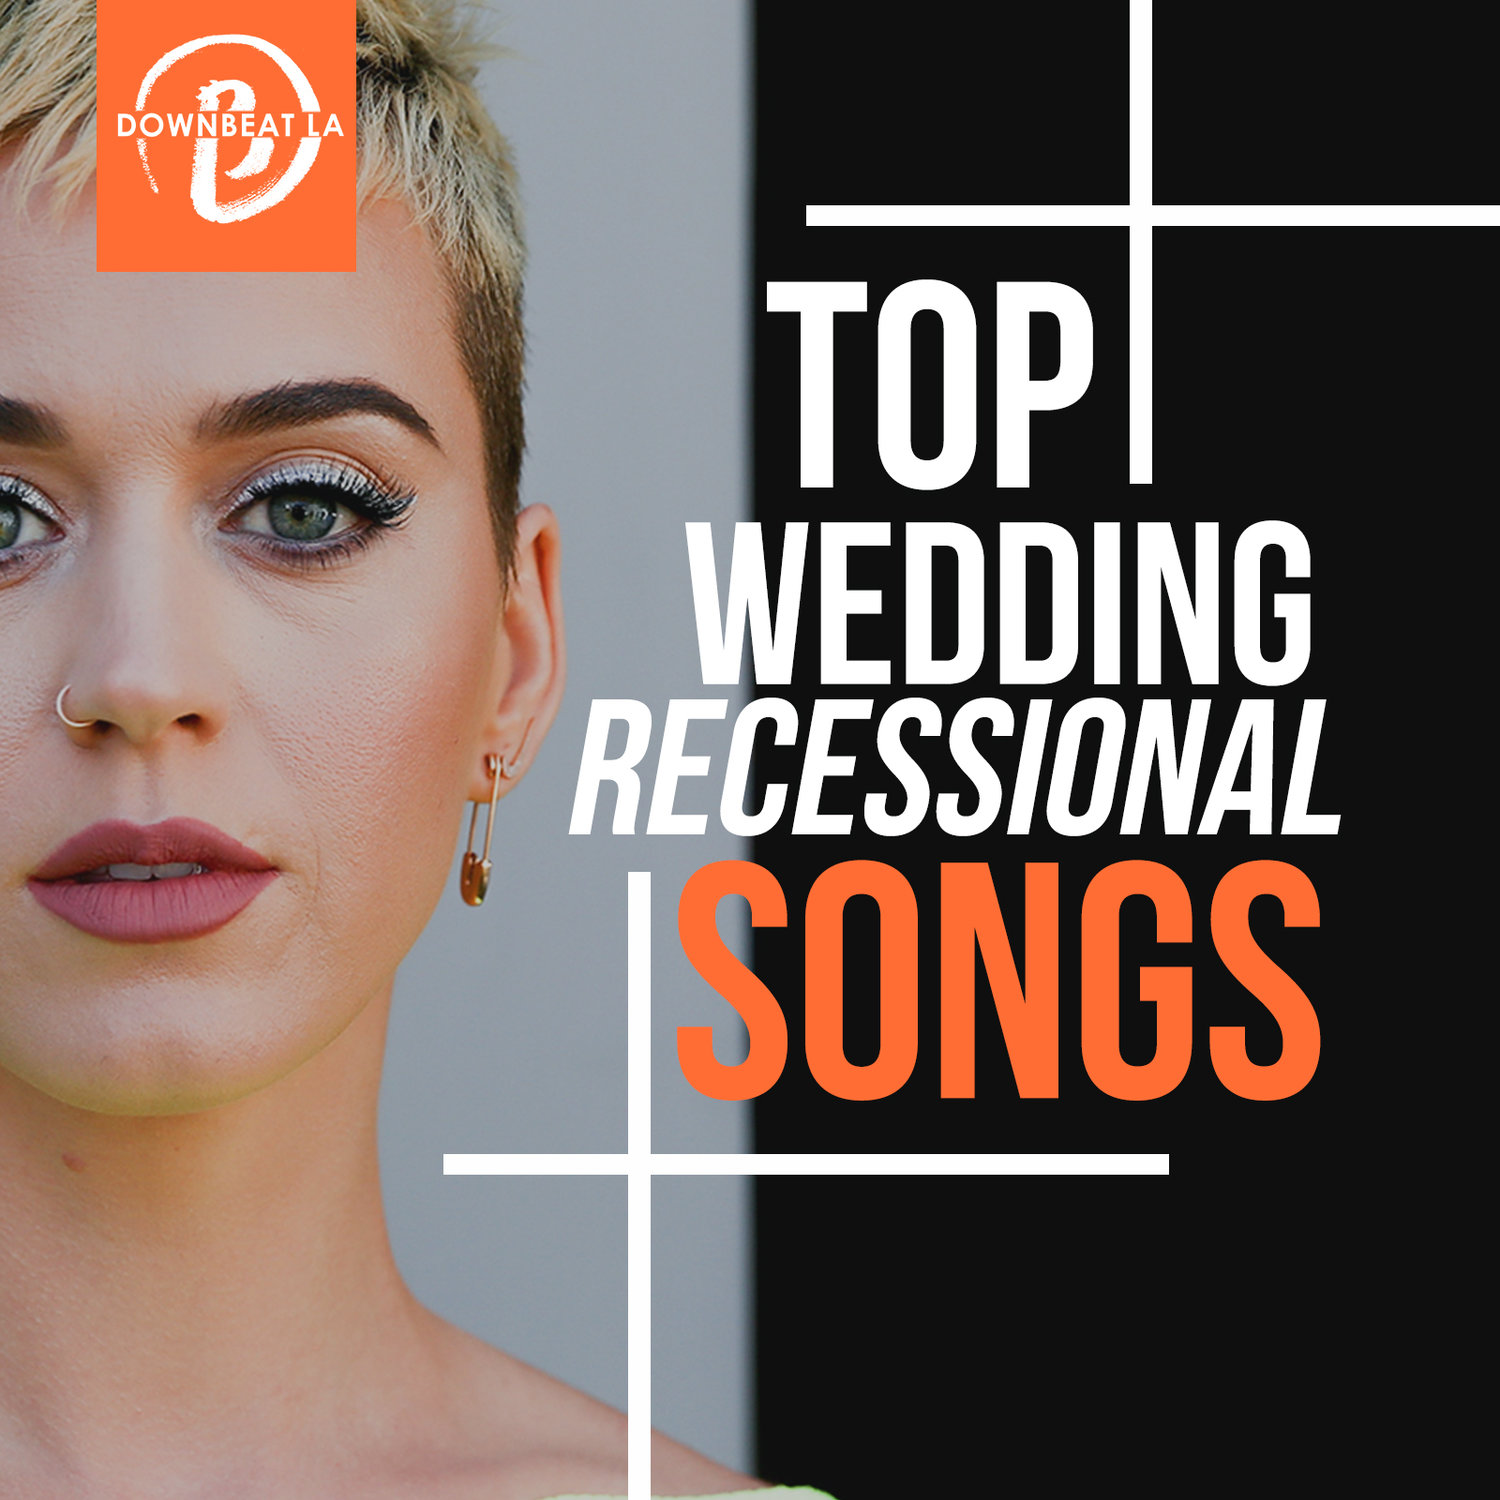 Top Wedding Recessional Songs (Playlist) — Downbeat LA